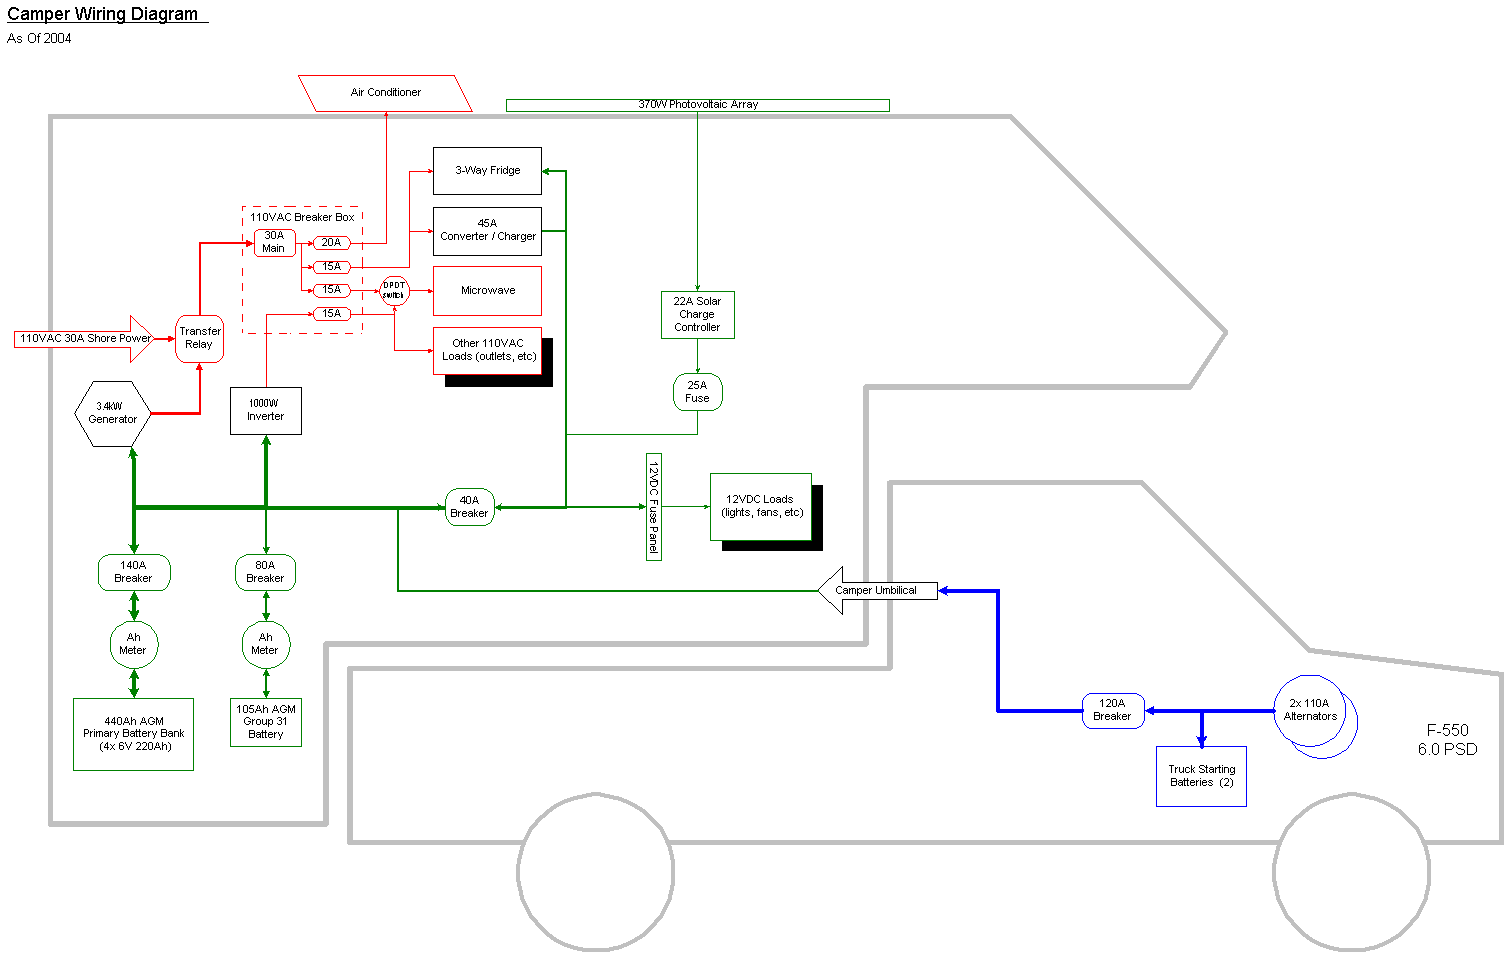 2004Diagram camper wiring diagram camper wiring diagram vw 1969 \u2022 wiring 30 amp rv plug wiring diagram at n-0.co